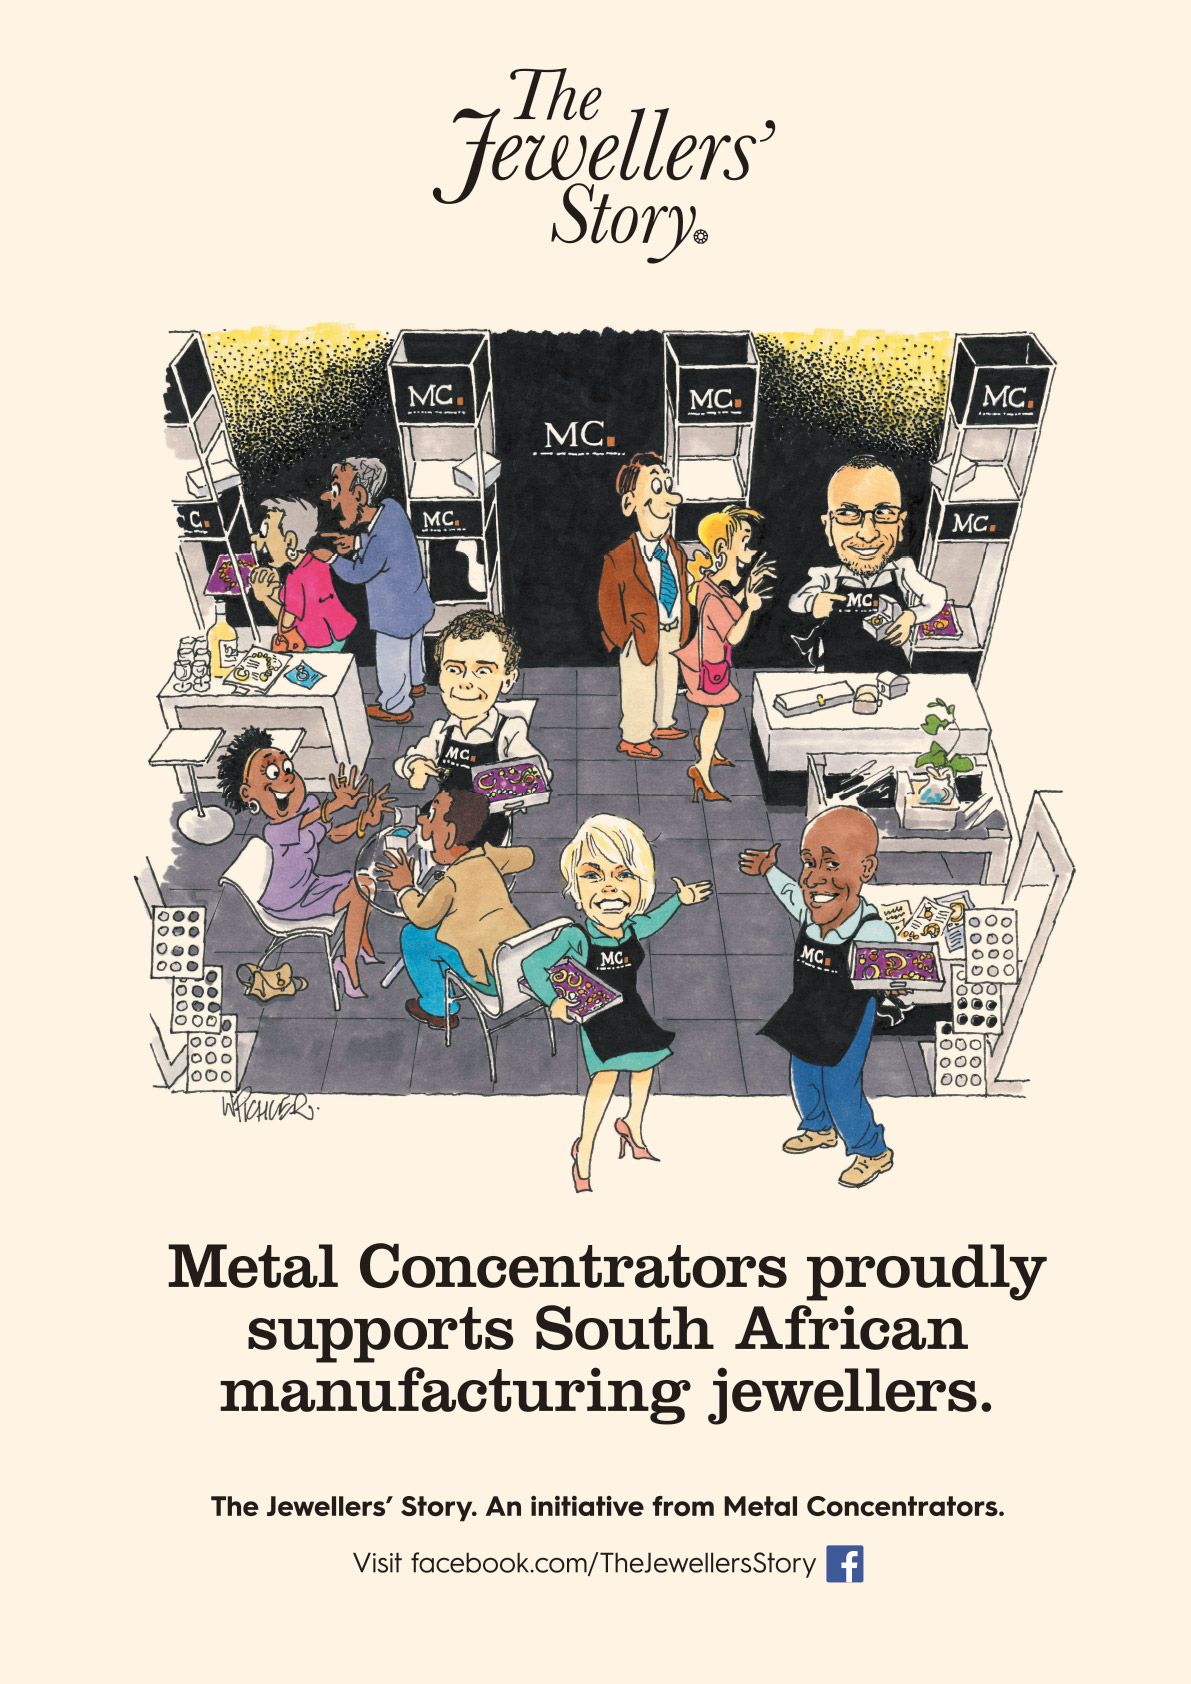 MC proudly supports SA manufacturing jewellers